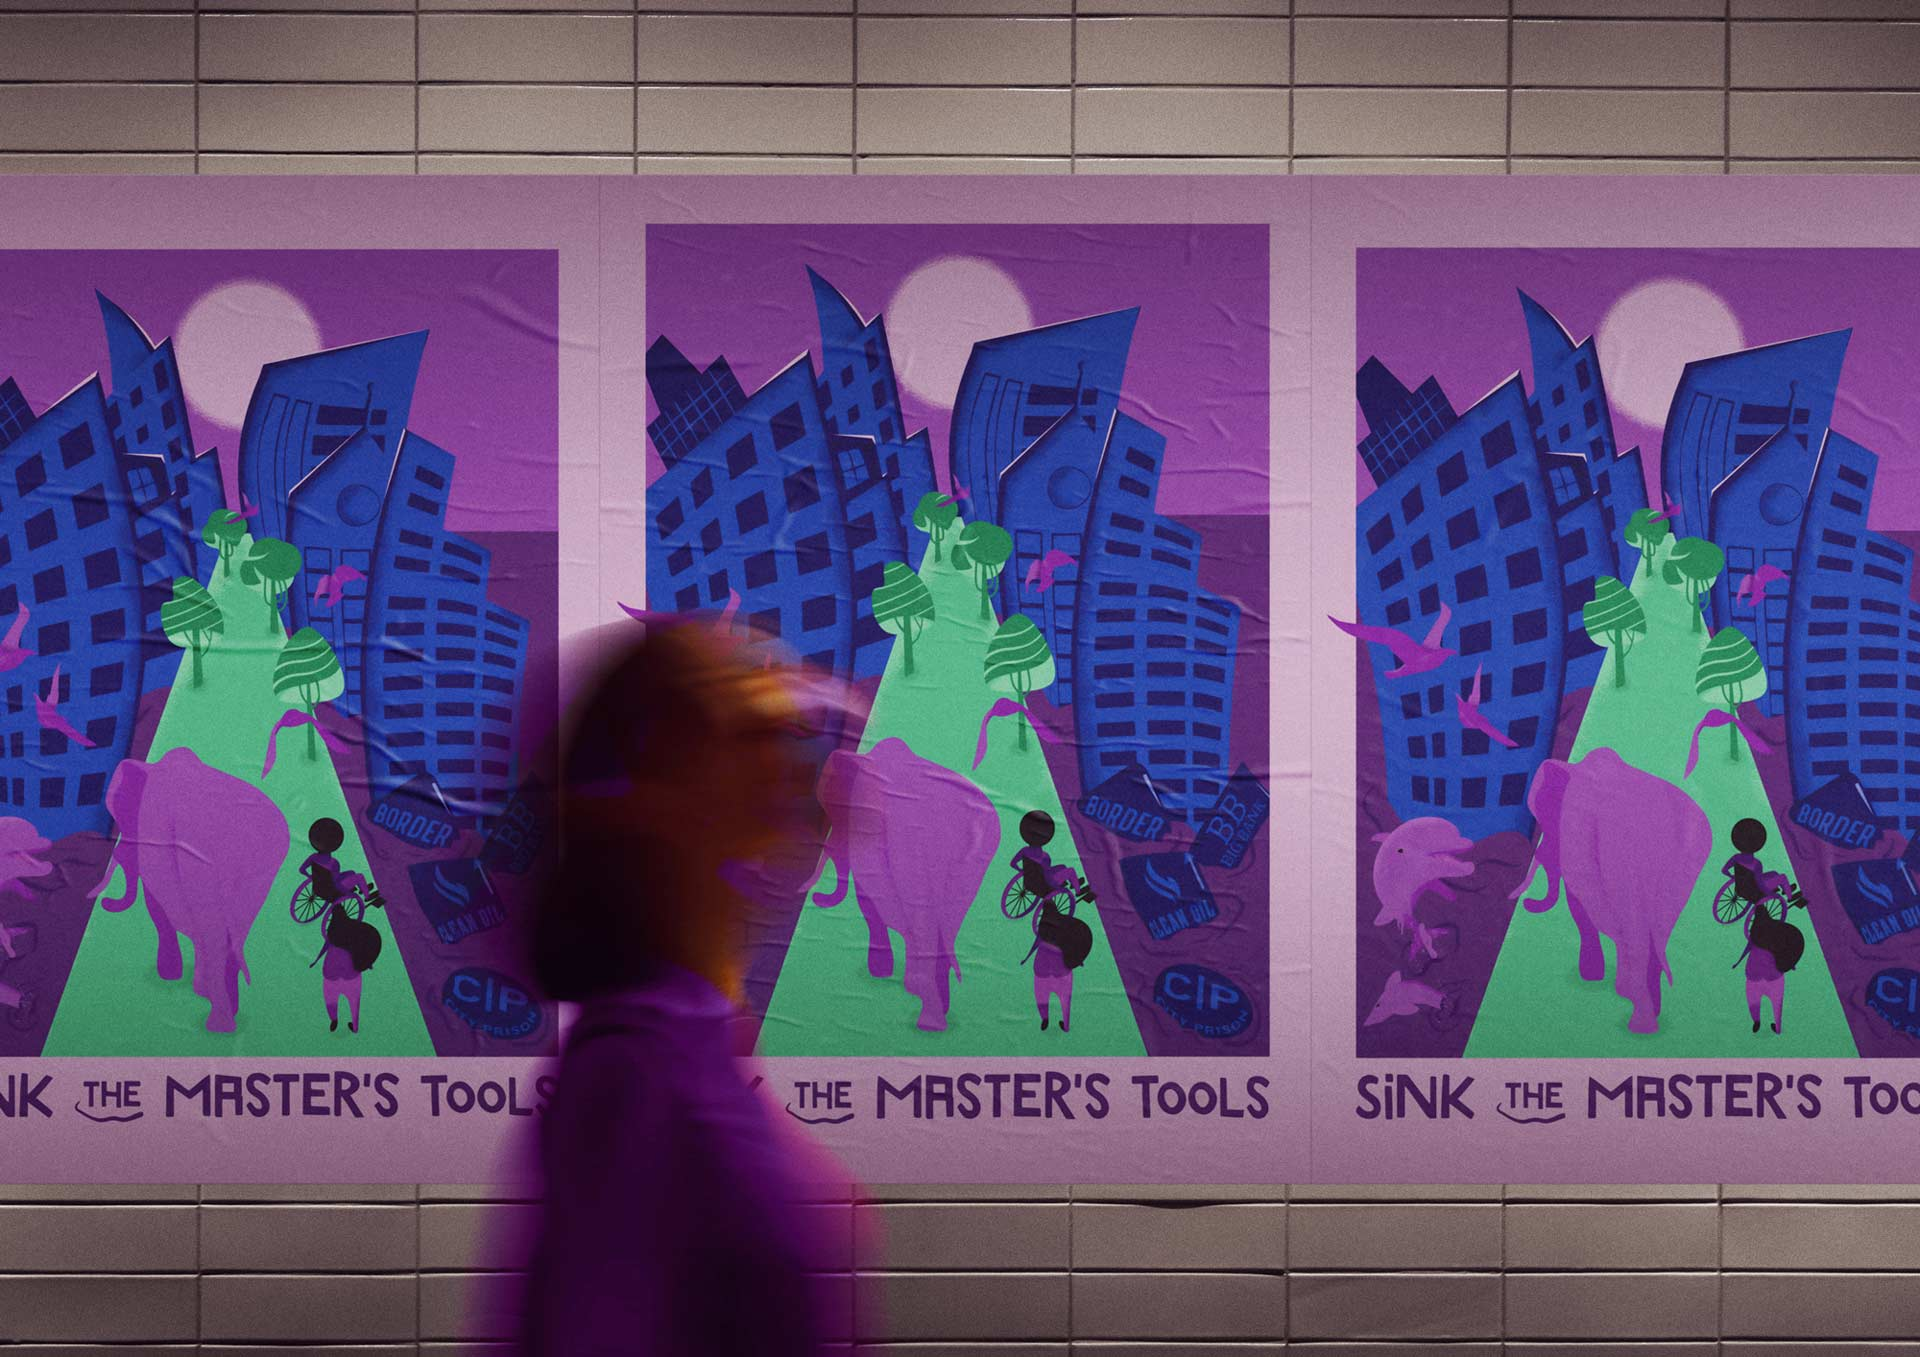 Mockup street poster of Sink the master's tools illustration with blurred person passing by